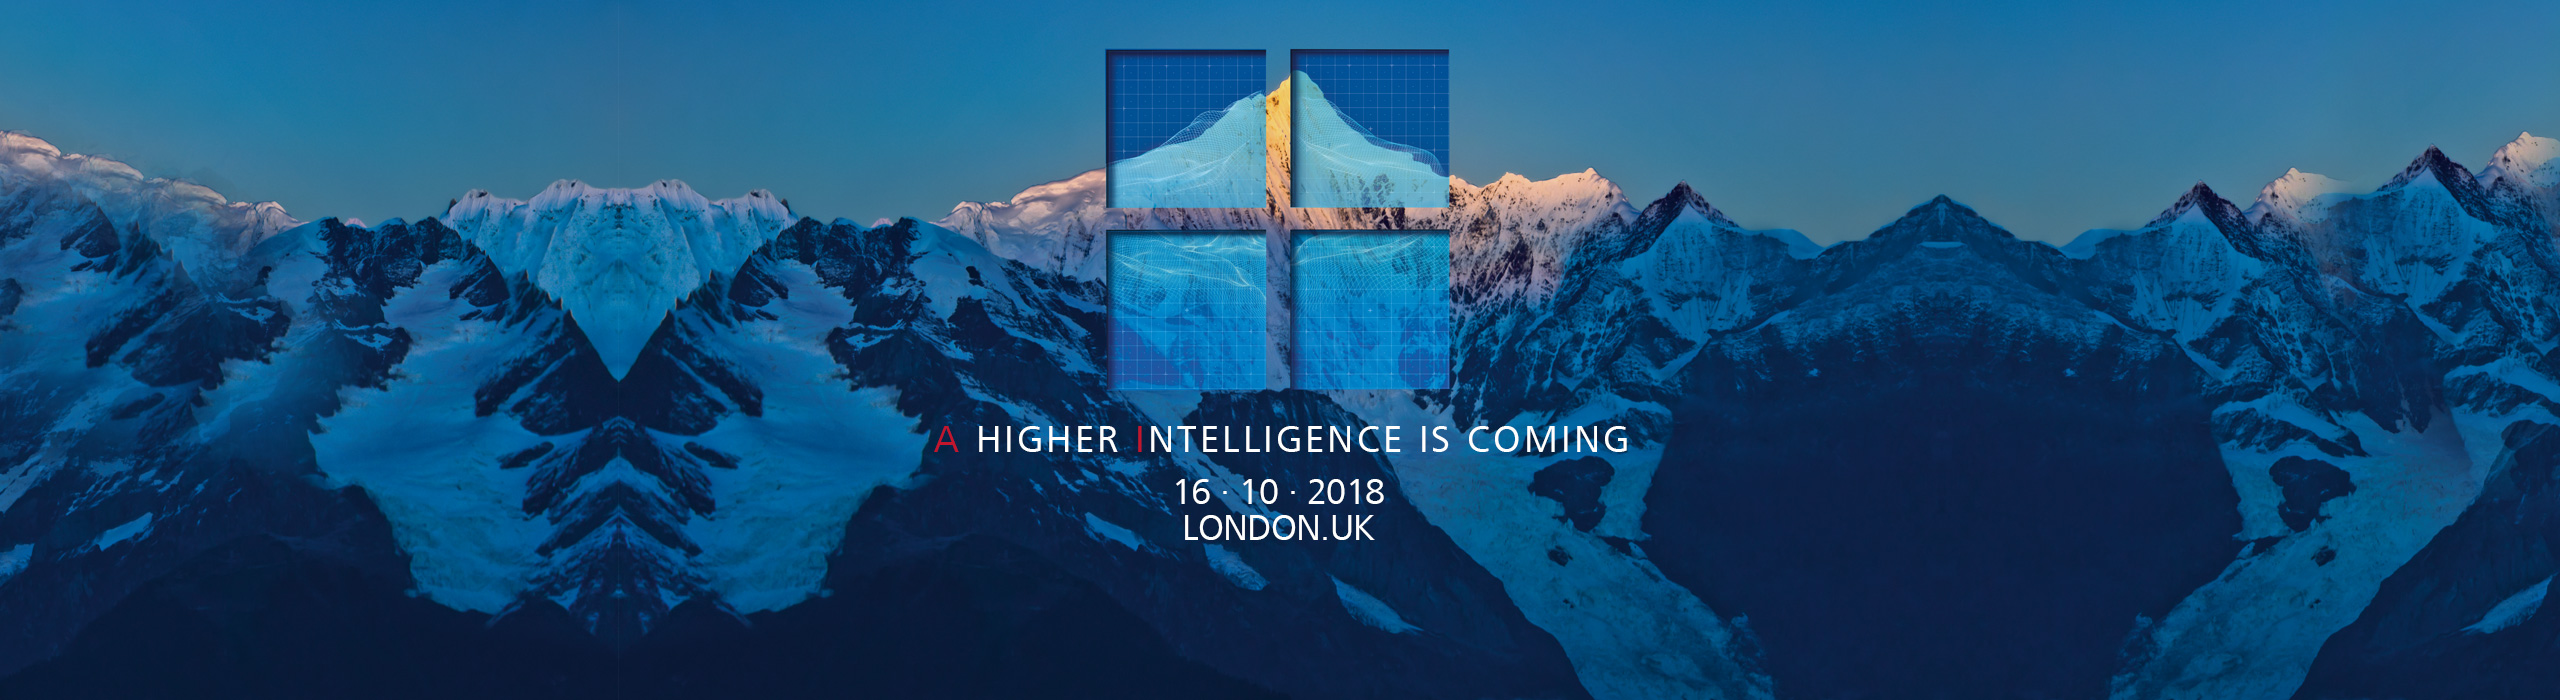 A HIGHER INTELLIGENCE IS COMING